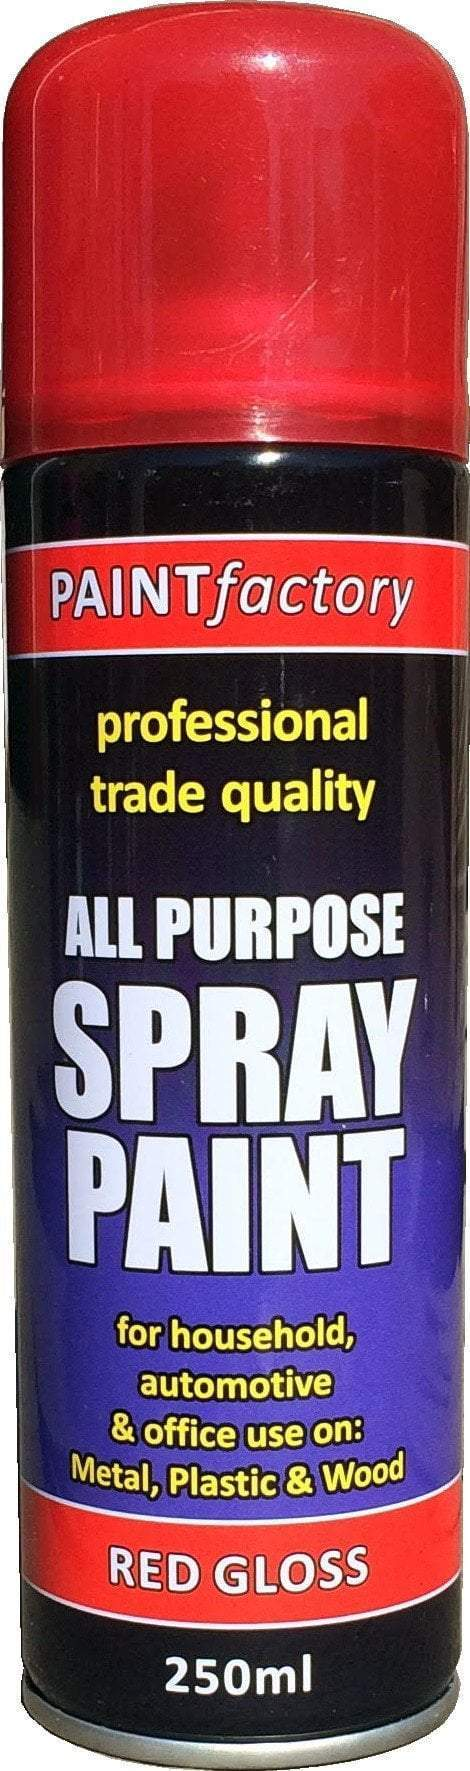 Paint Factory All Purpose Spray Paint Red Gloss 250ml  7143 (Parcel Rate)